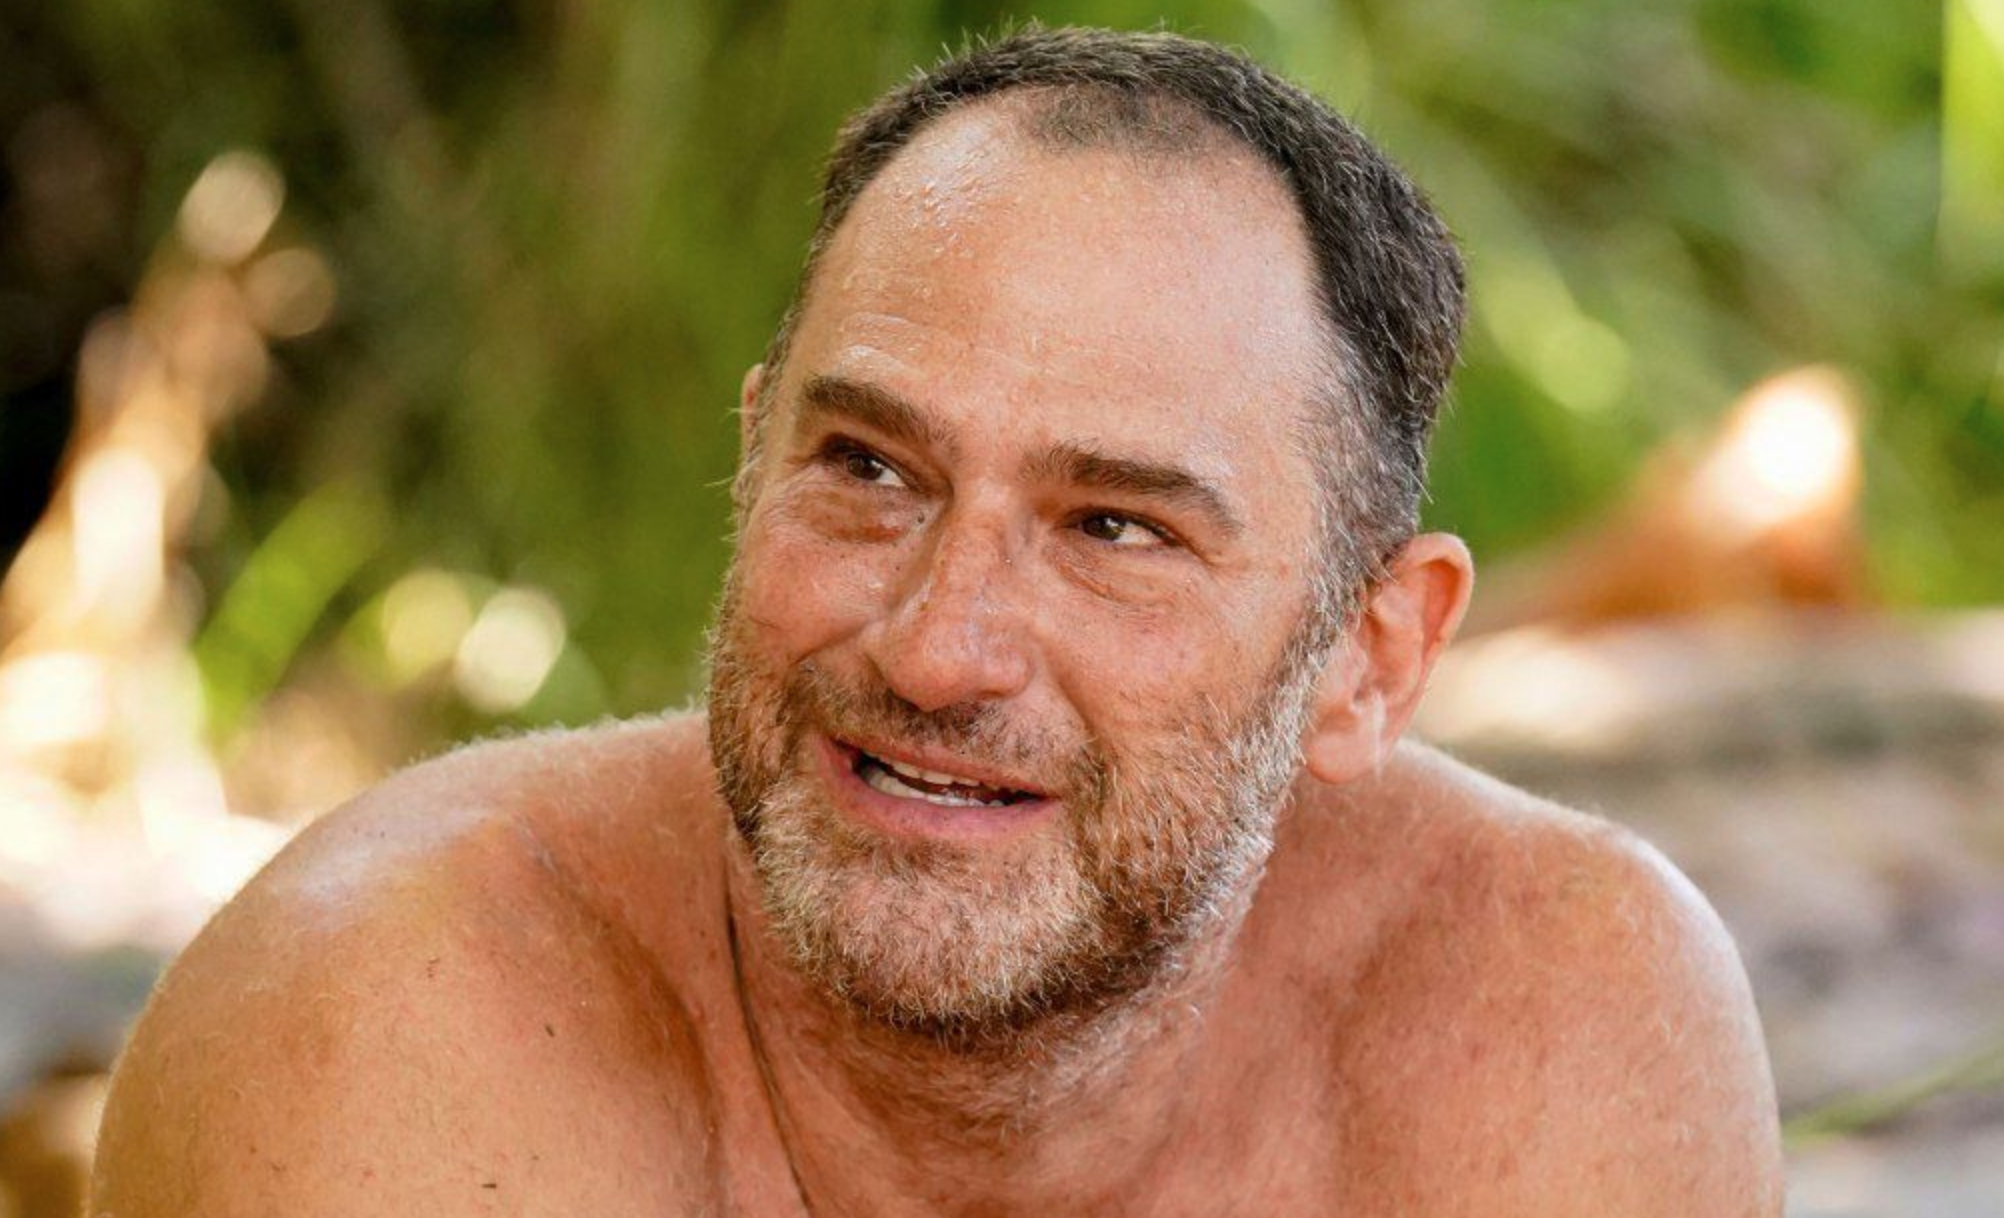 'Survivor' Contestant Dan Spilo Becomes First Player To Be Removed From The Show Following 'Off-Camera,' Undisclosed 'Incident'